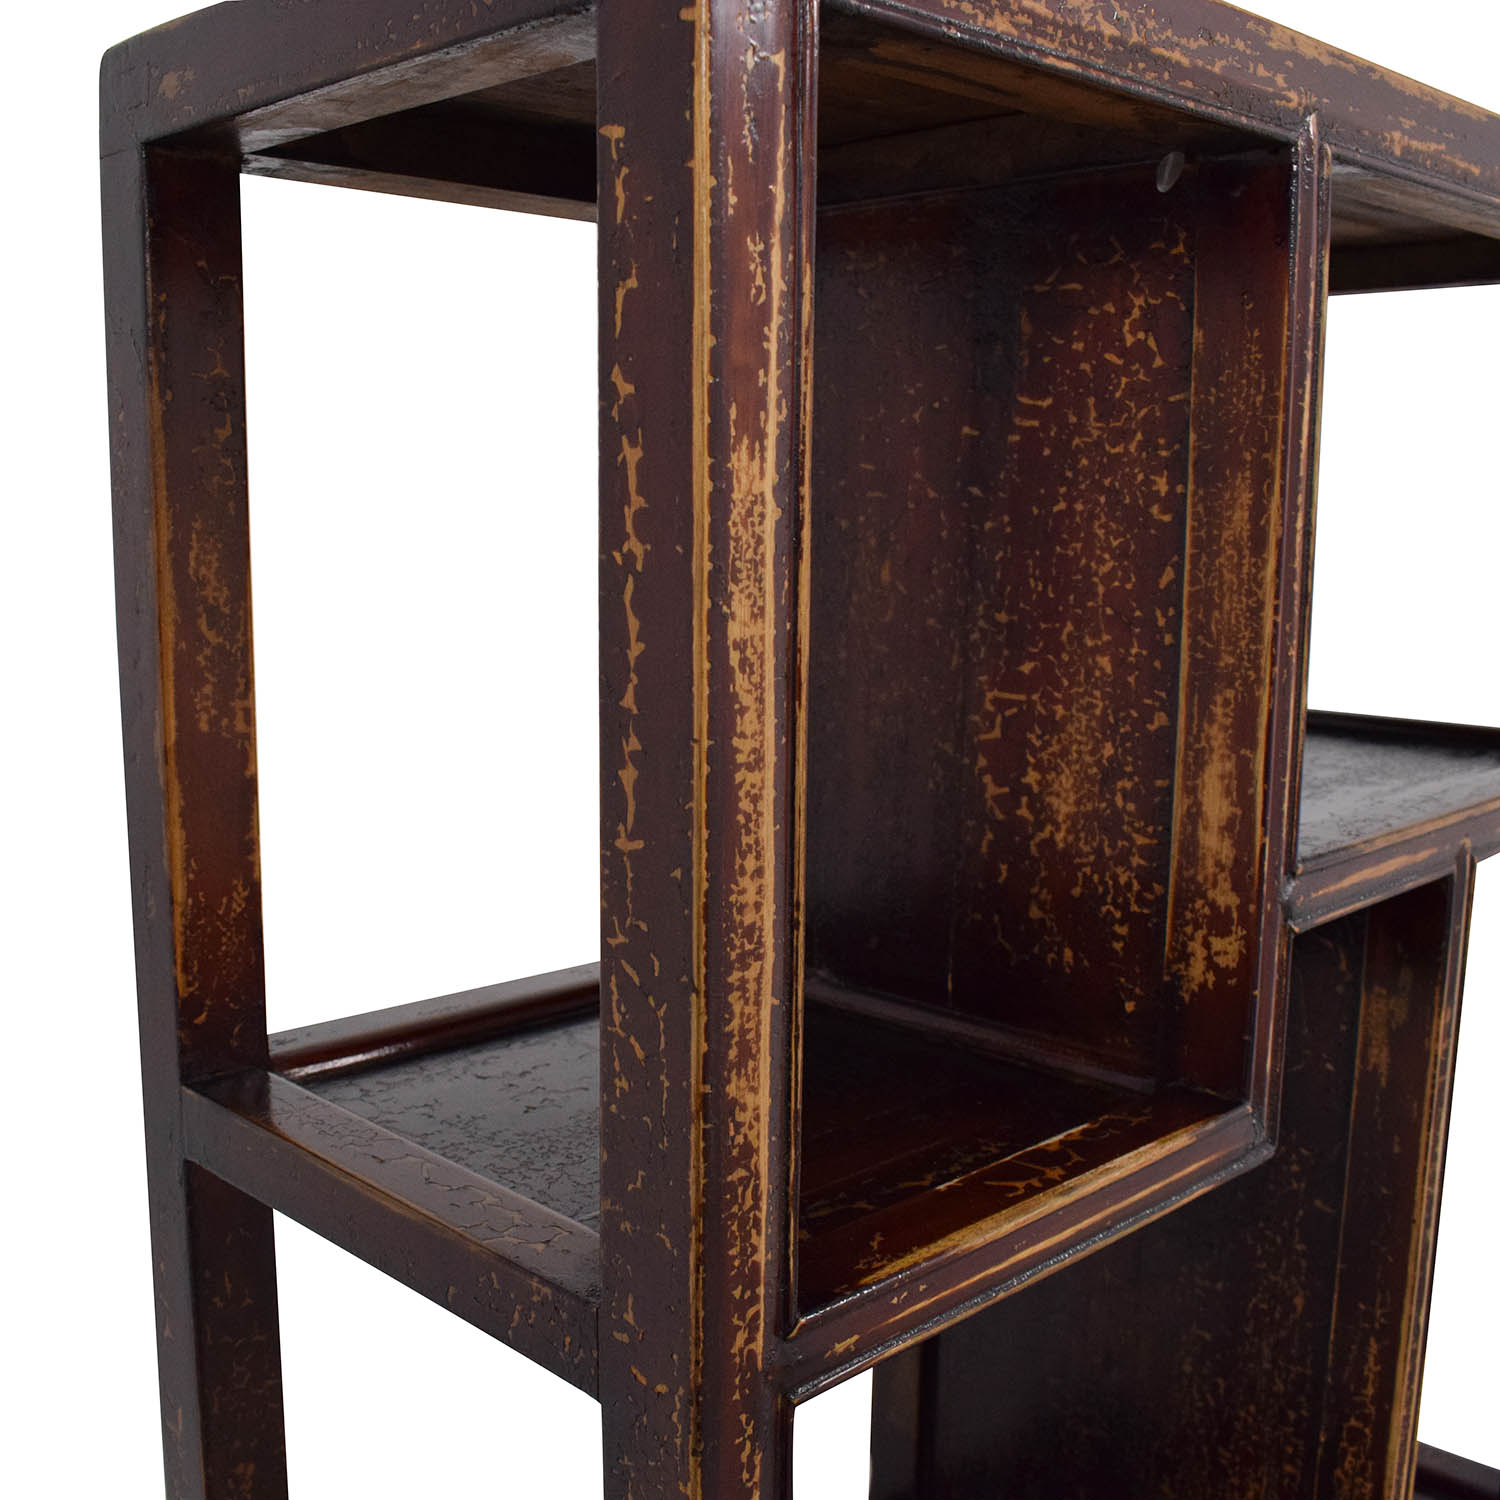 buy Chinese Wooden Shelf  Bookcases & Shelving